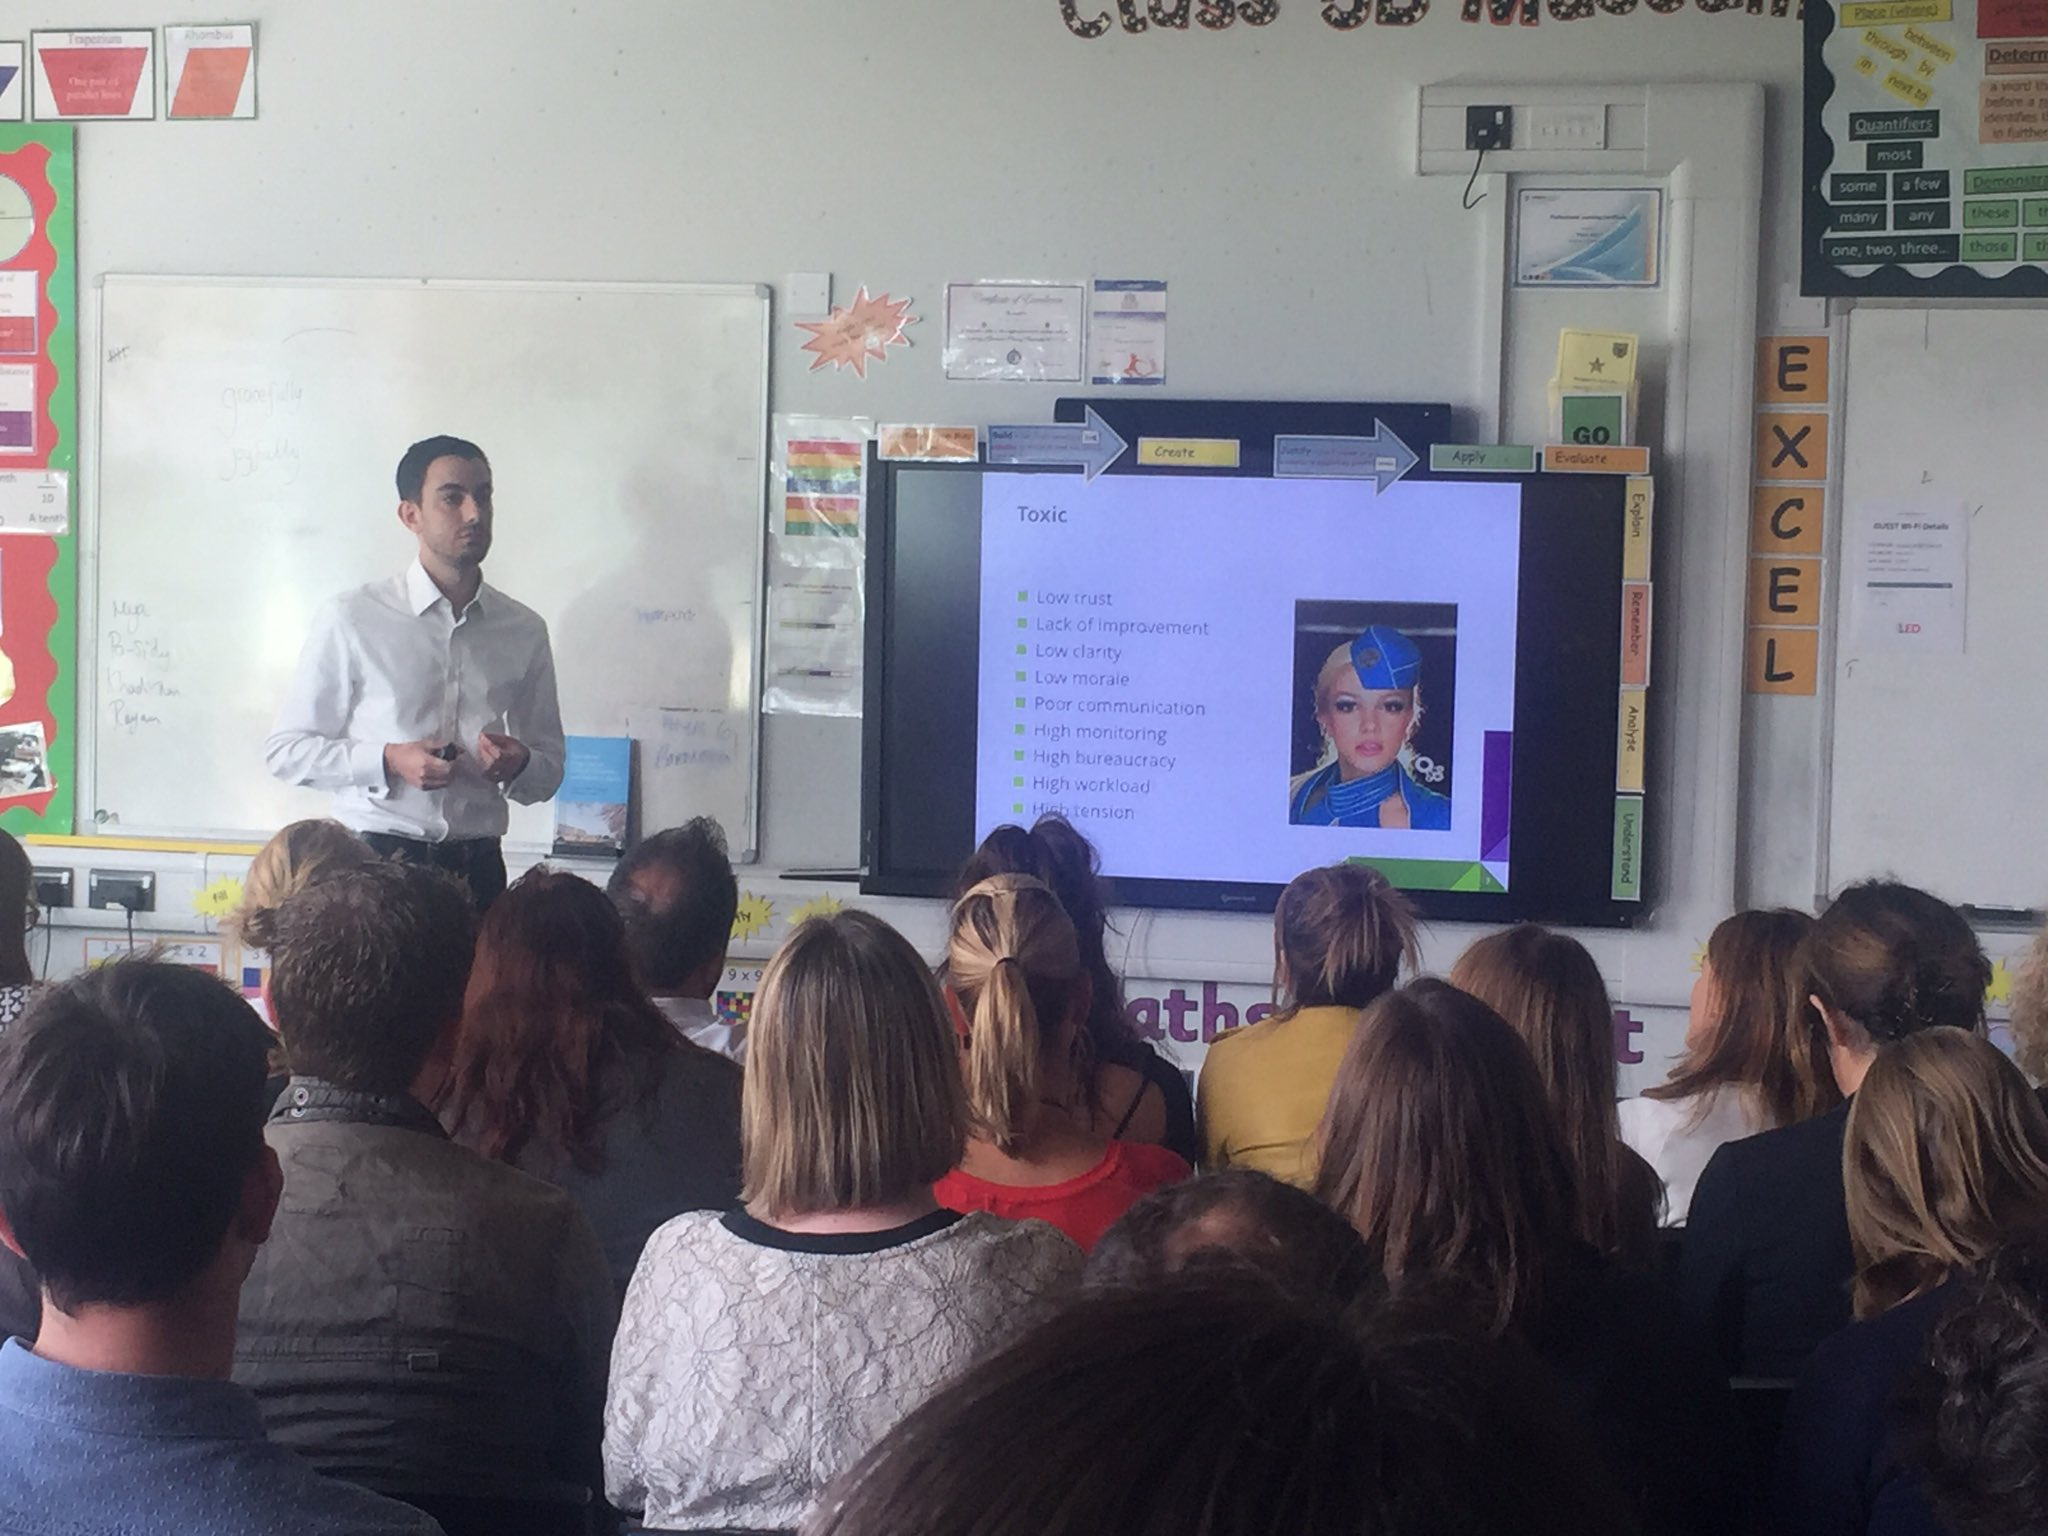 Toxic schools (with a Britney slide!) and David Weston @informed_edu #rED17 https://t.co/5oFyGJyN4K